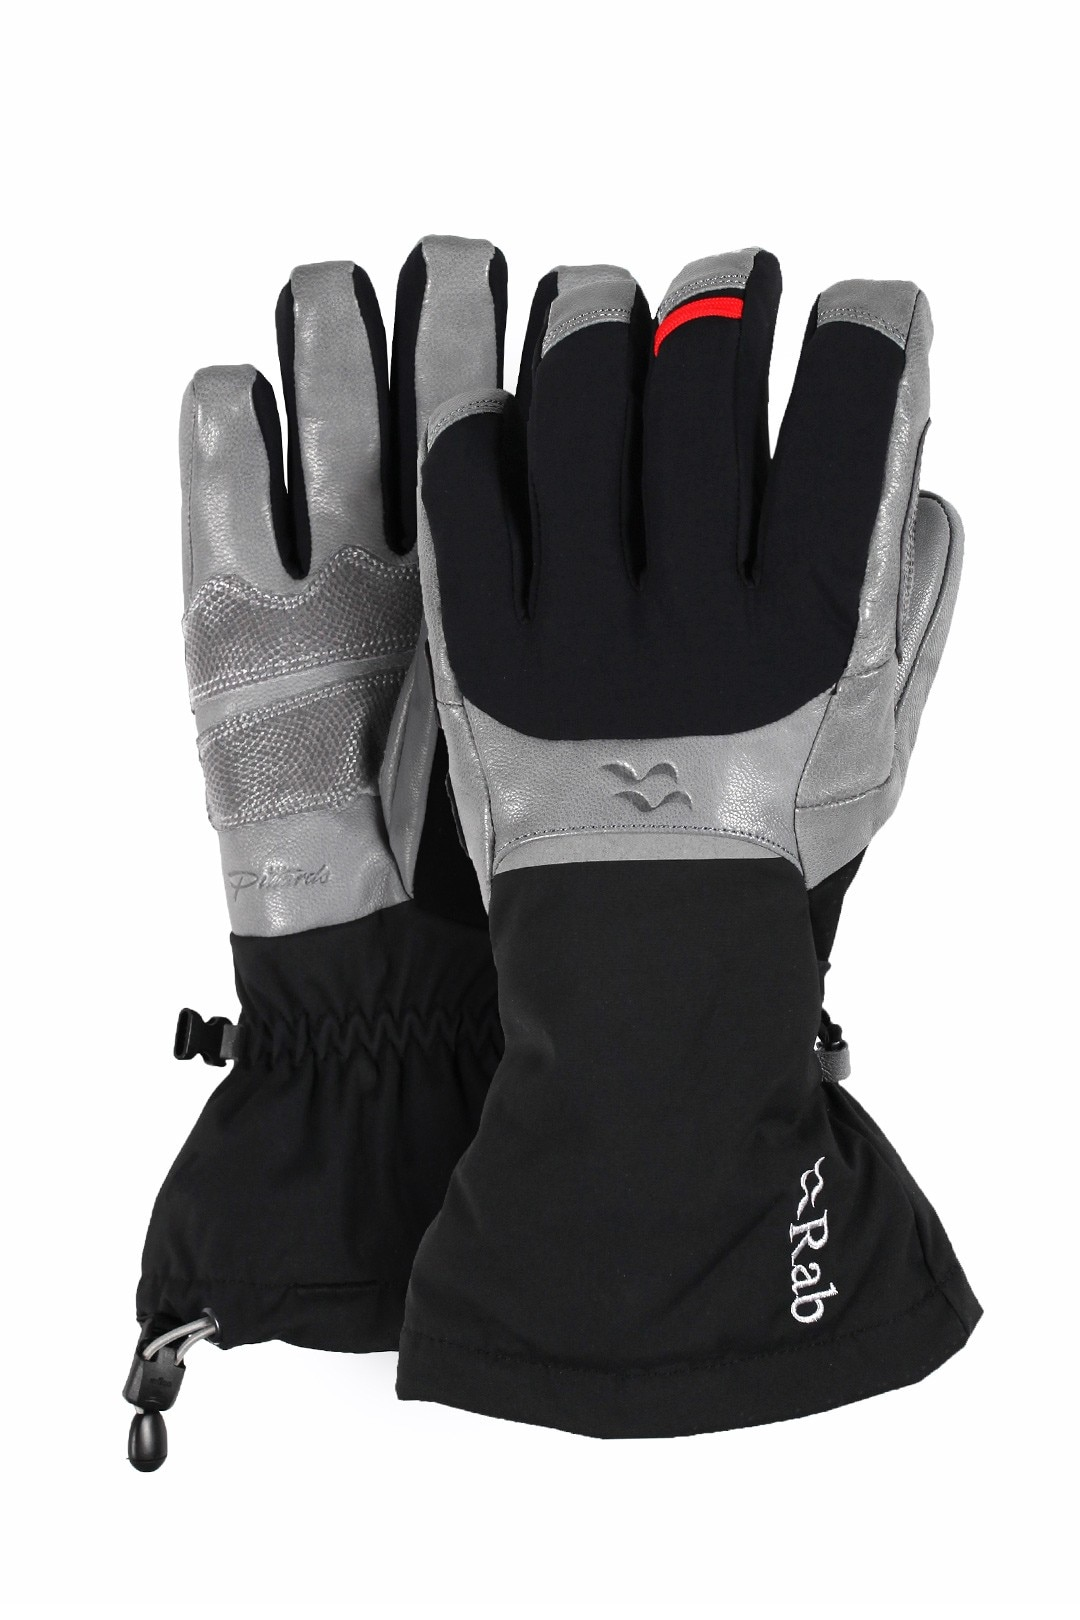 RAB Alliance Glove, Black